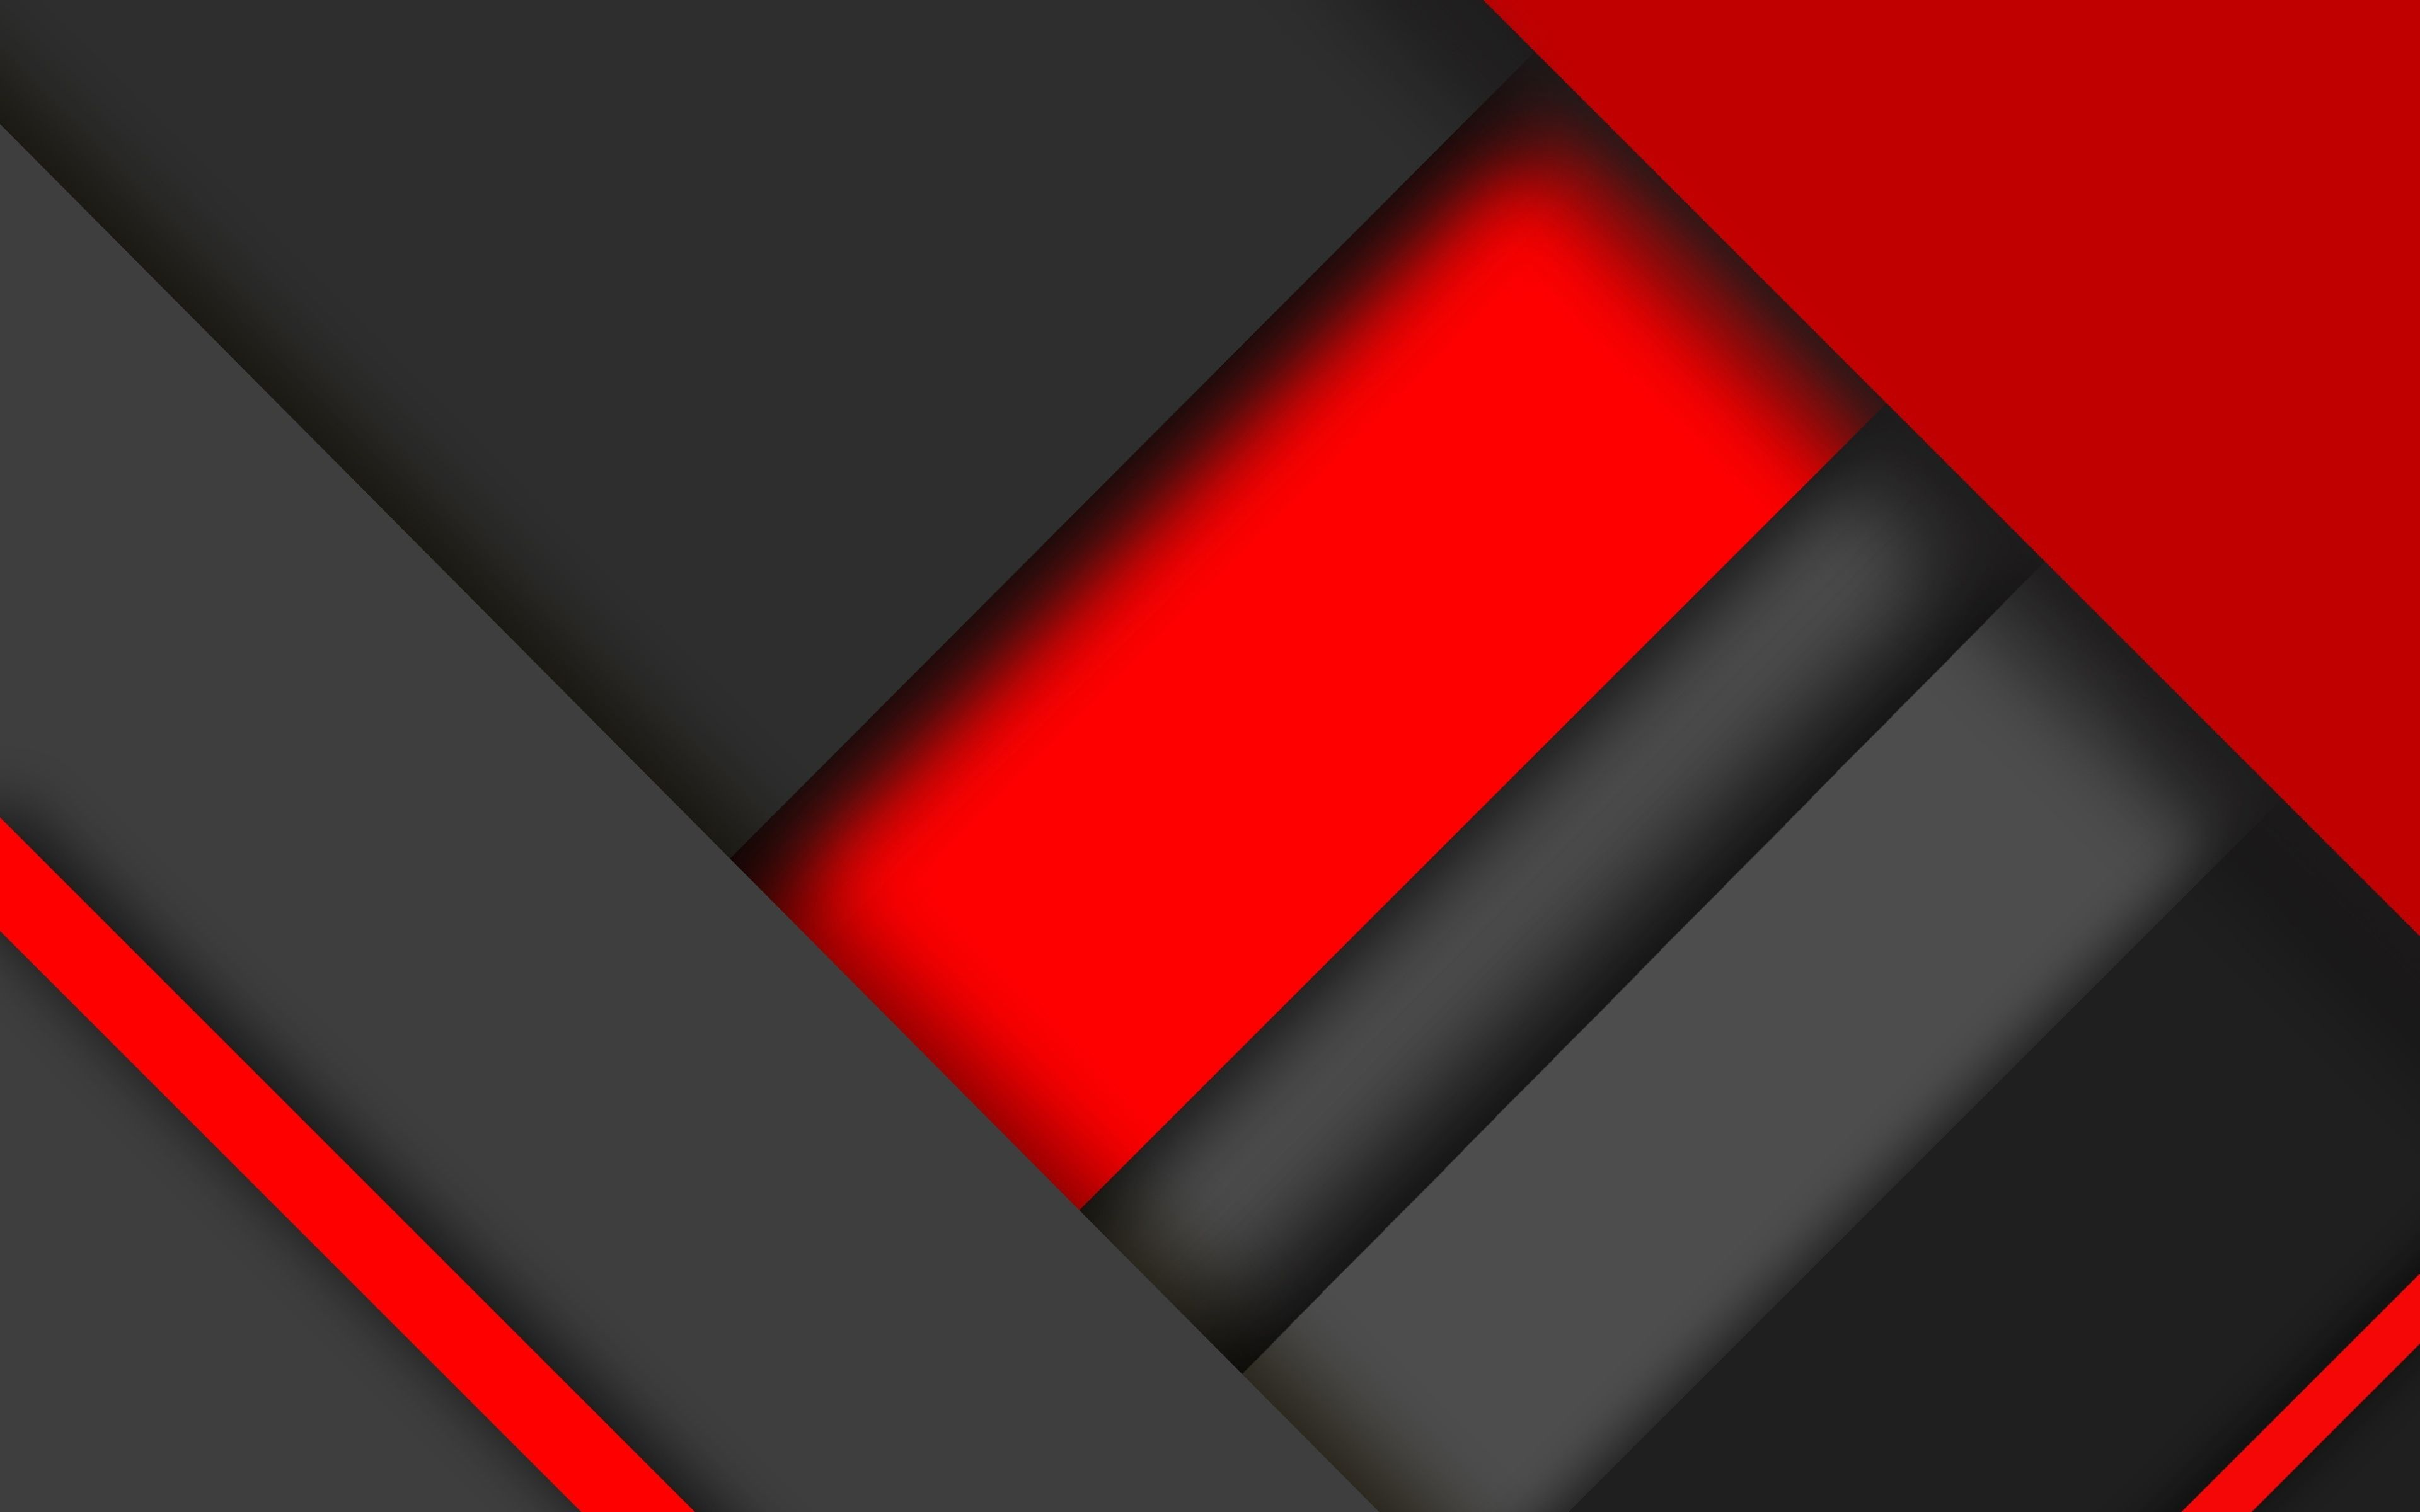 Red Black Color Interval Abstract 4k Red Wallpapers Hd Wallpapers Black Wallpapers Abstract Wallpap Abstract Wallpapers Red Wallpapers 4k Abstract Wallpaper